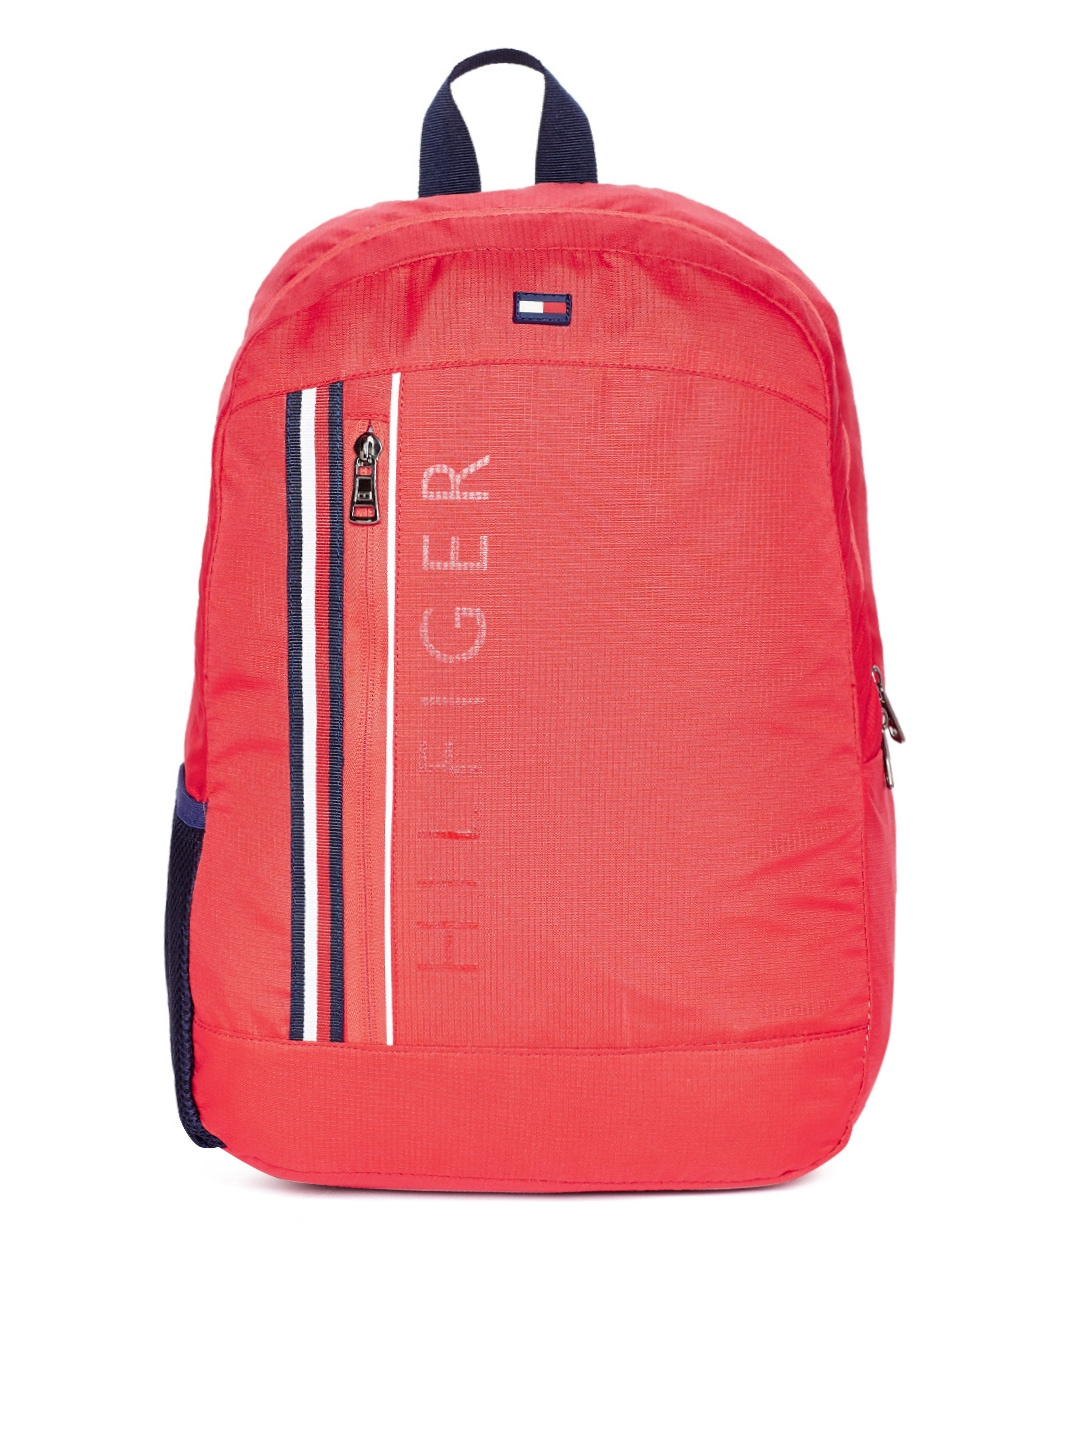 Laptop Backpacks In India- Fenix Toulouse Handball 275faad69d24f